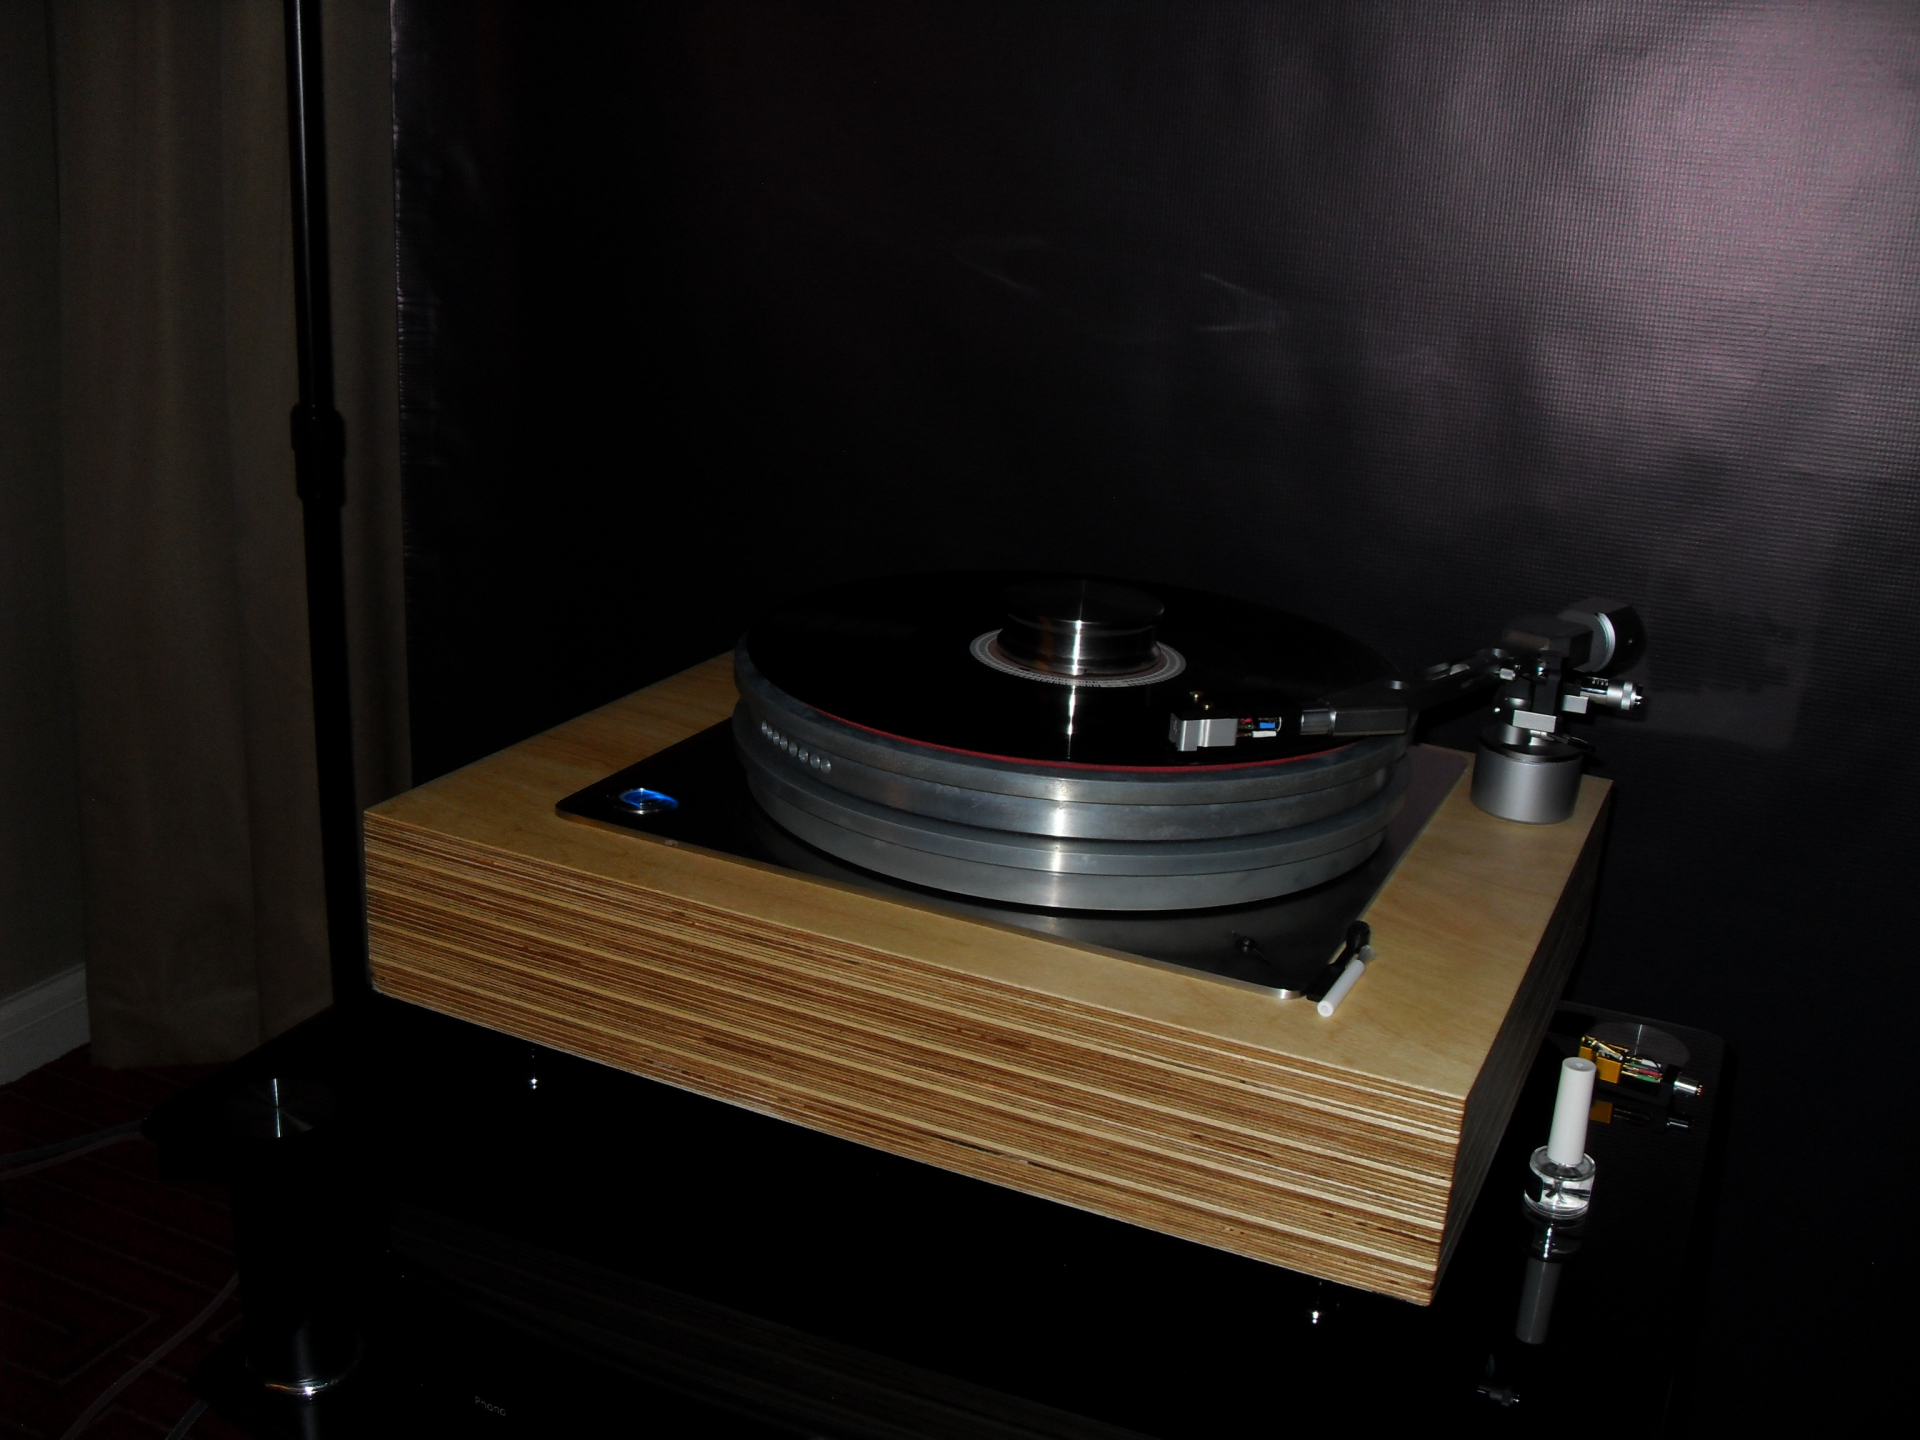 Custom Pulse turntables